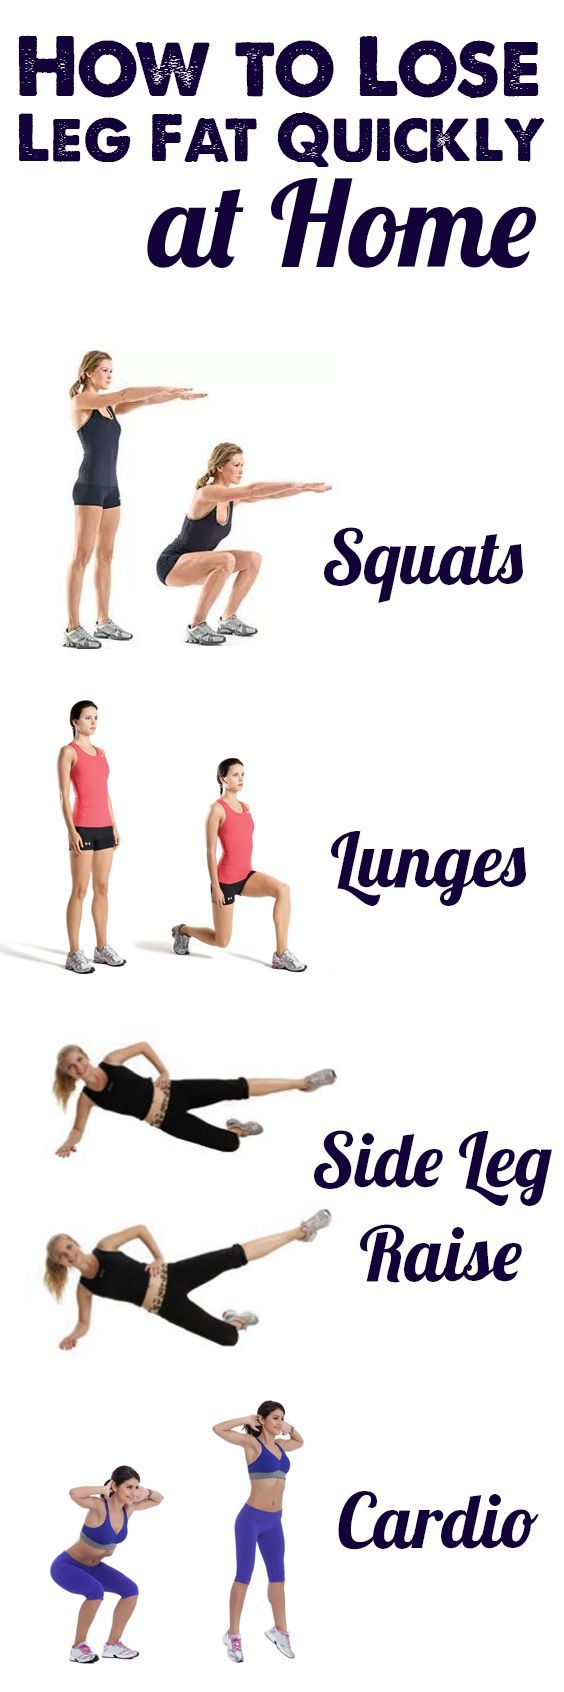 How to lose leg fat quickly at home fat legs and weight loss how to lose leg fat quickly at home fat legs and weight loss motivation ccuart Images